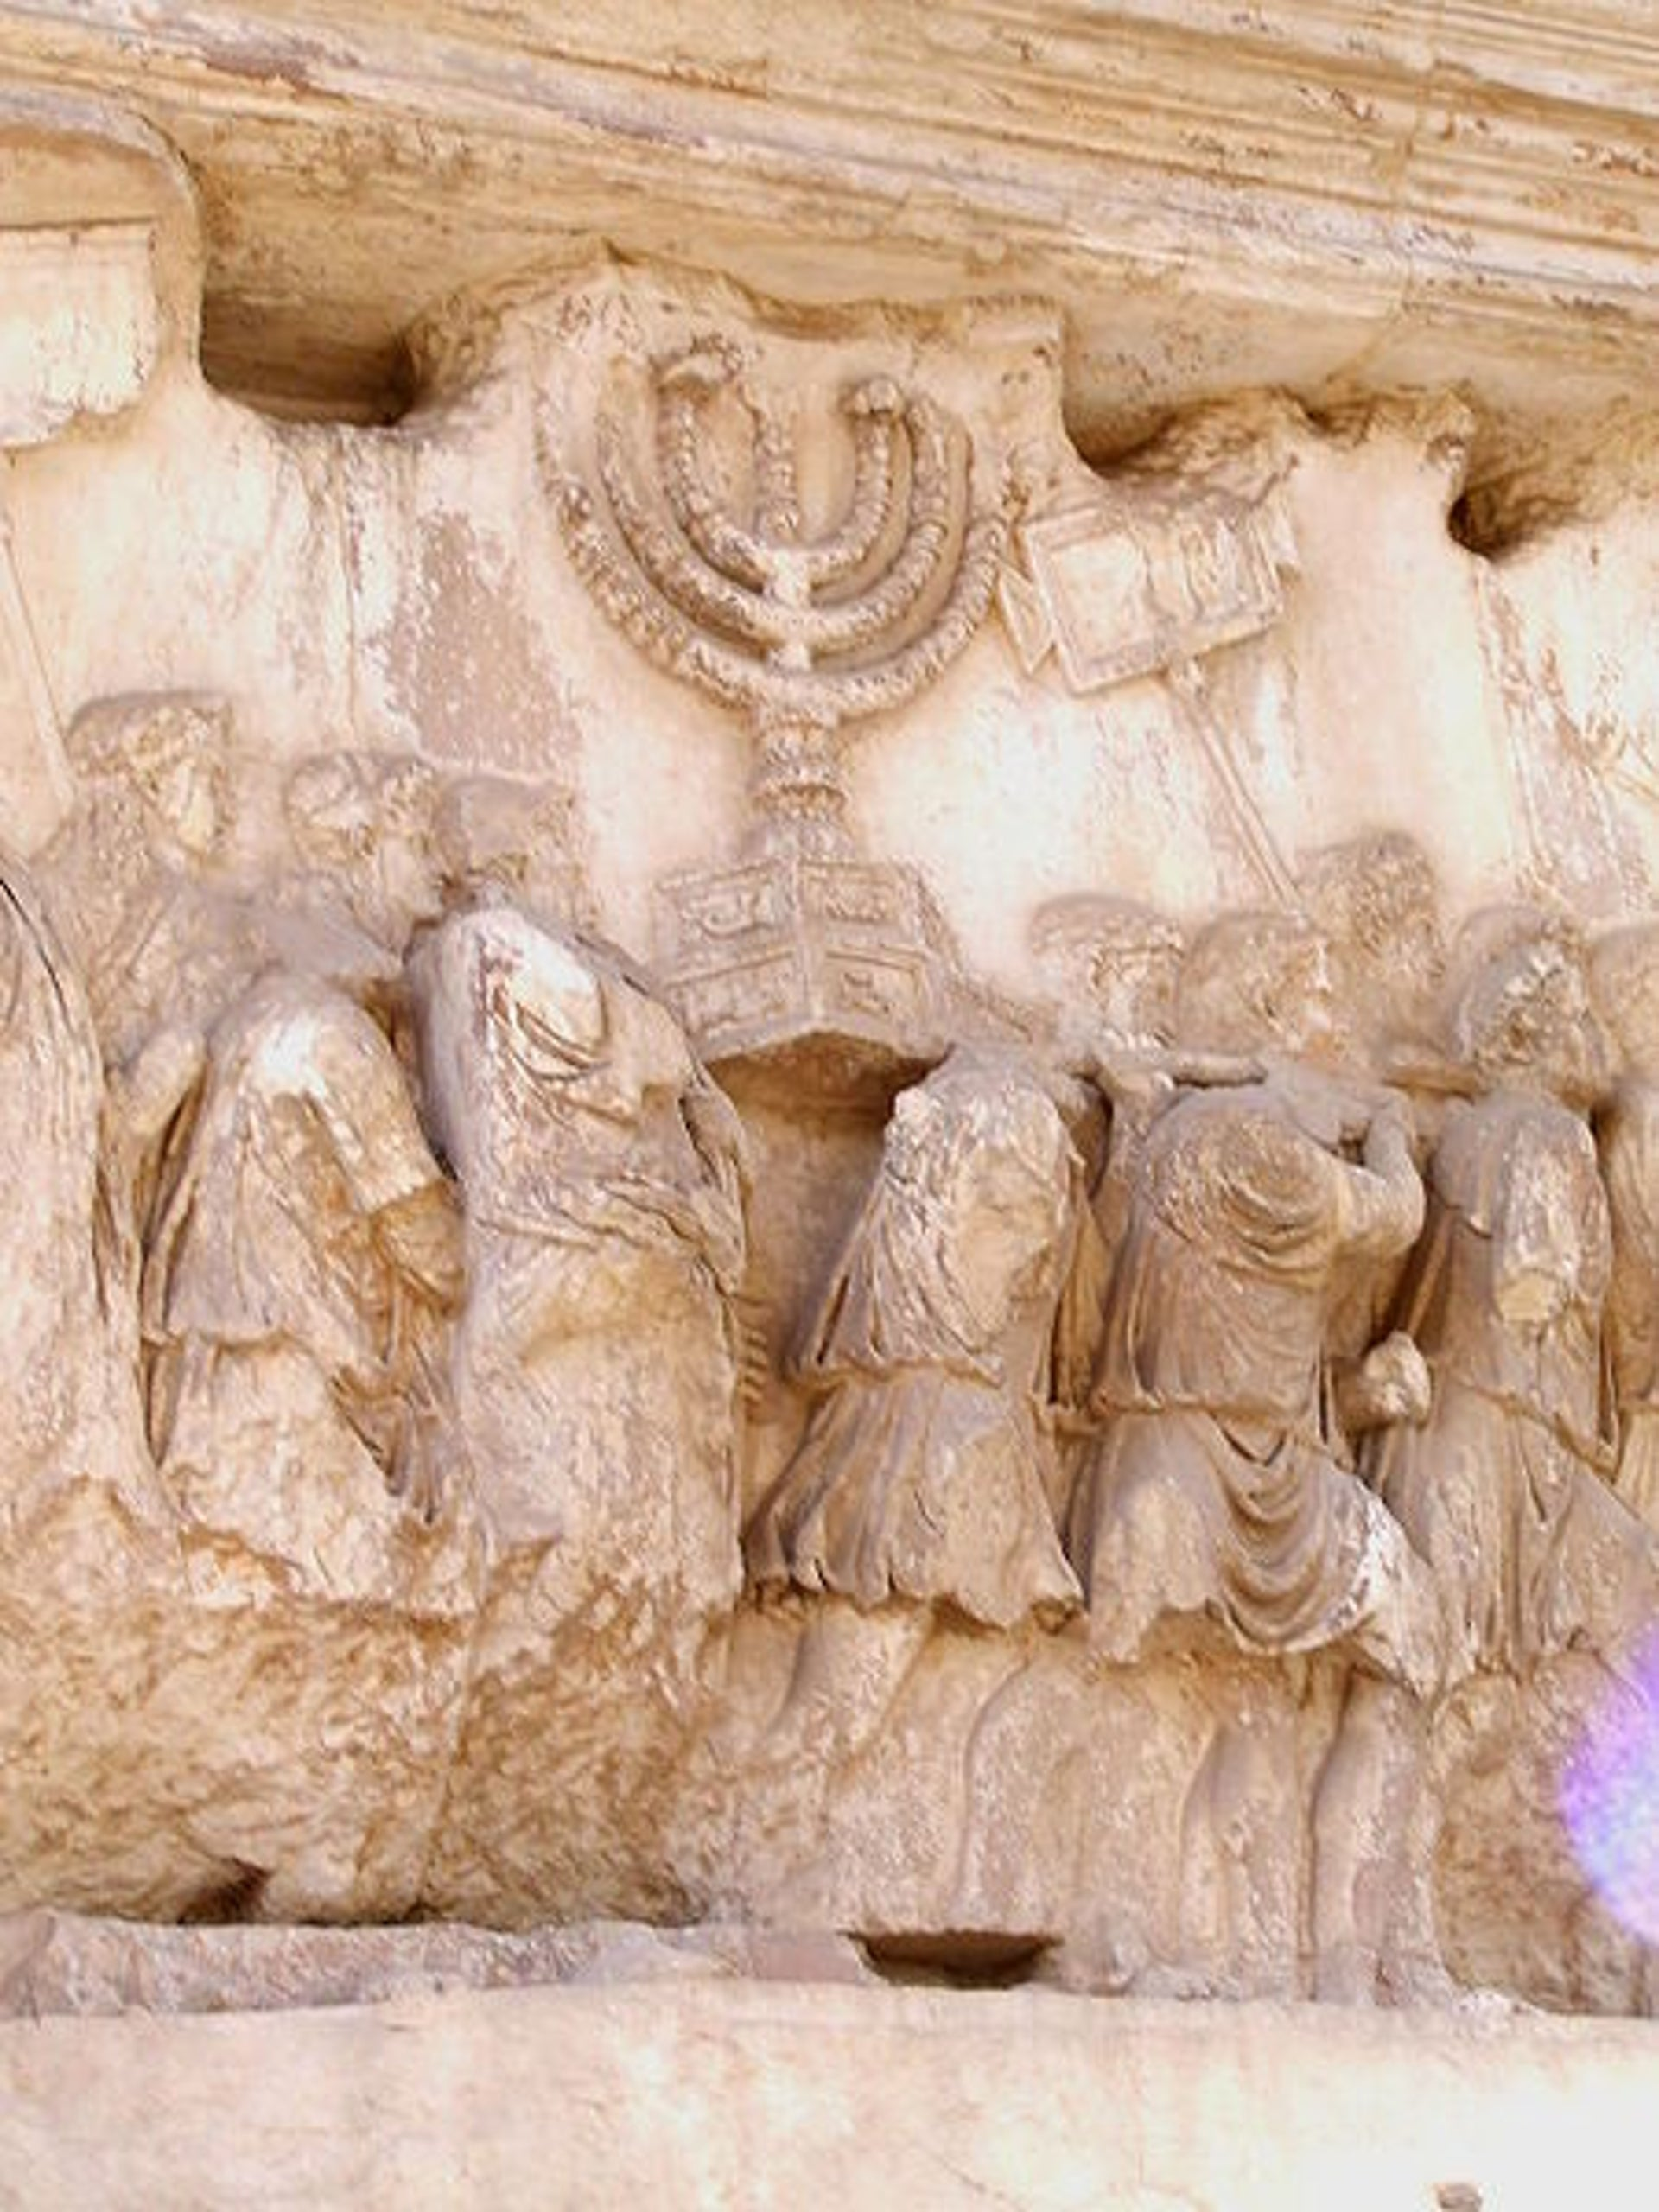 South panel of the Arch of Titus, Rome: The State of Israel adopted the Arch's depiction of the Temple Menorah, seen here, as its official state emblem in 1949. Emperor Titus had the arch made to commemorate destroying the Temple in Jerusalem and seizing its treasure, including the Menorah.